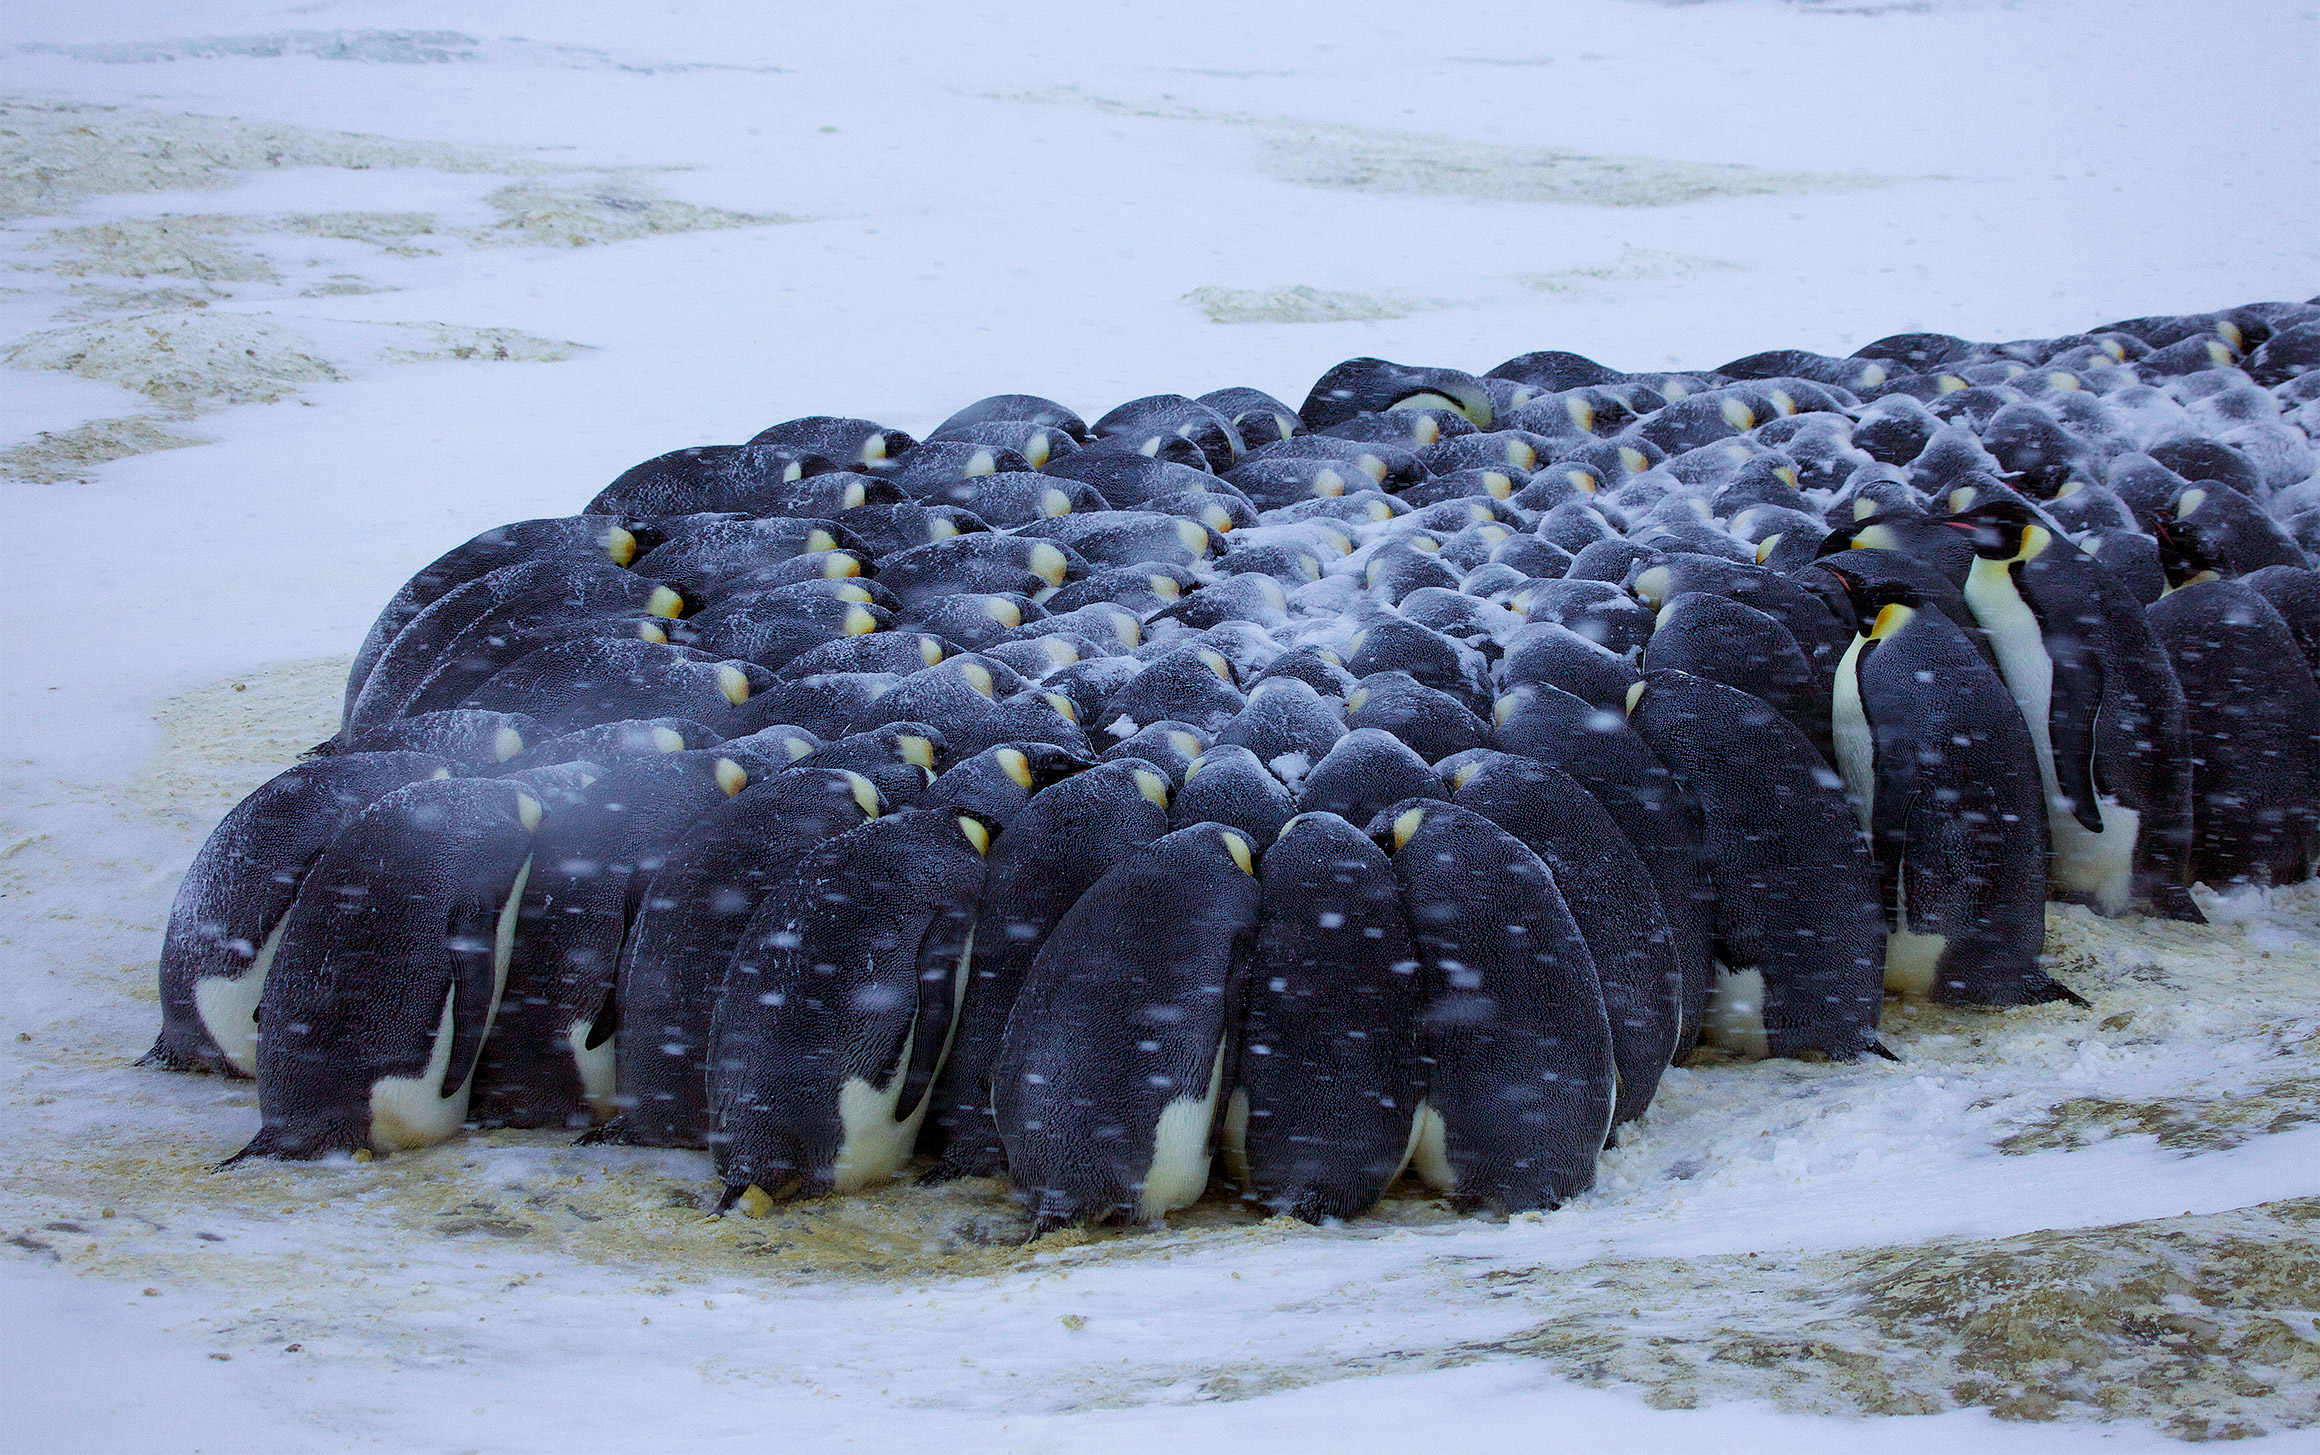 Photo of emperor penguins huddling together for warmth in snowy terrain